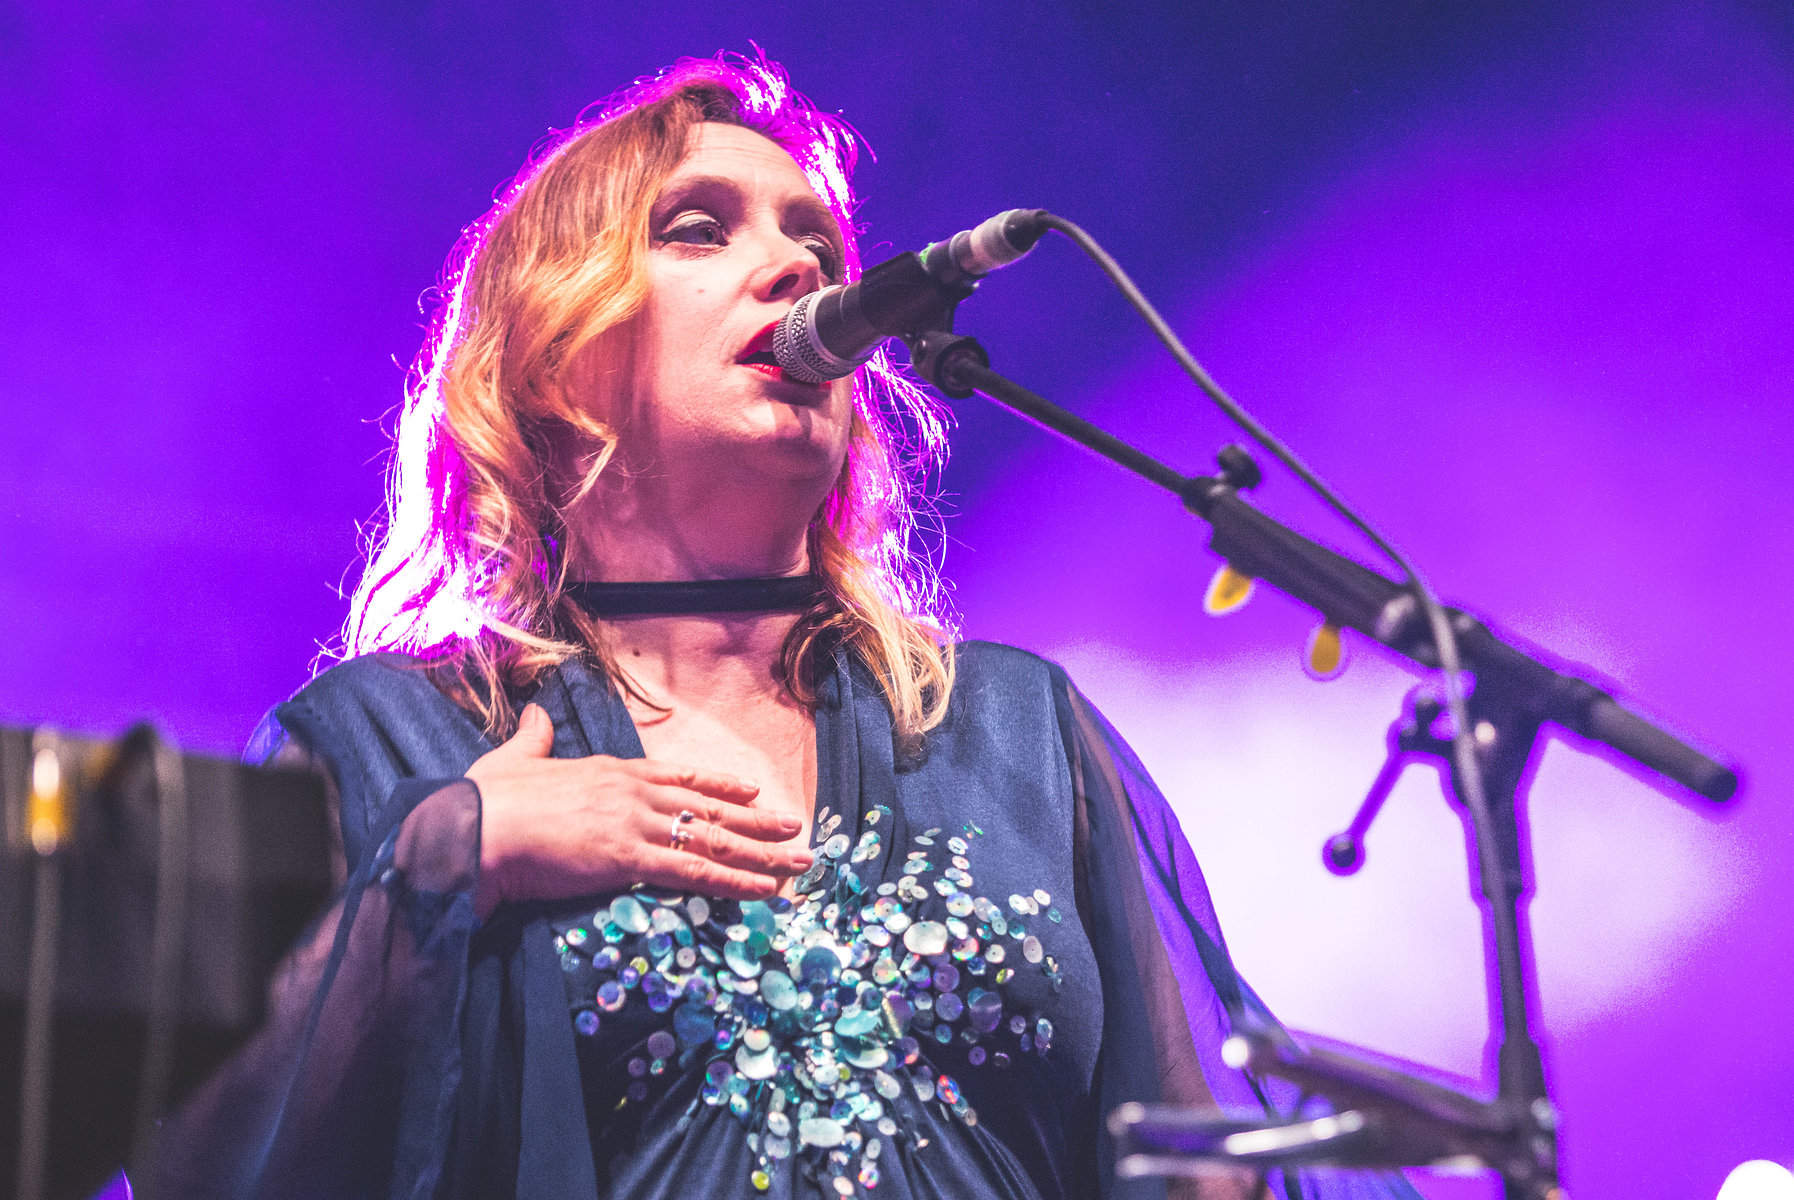 Slowdive at Field Day 2017